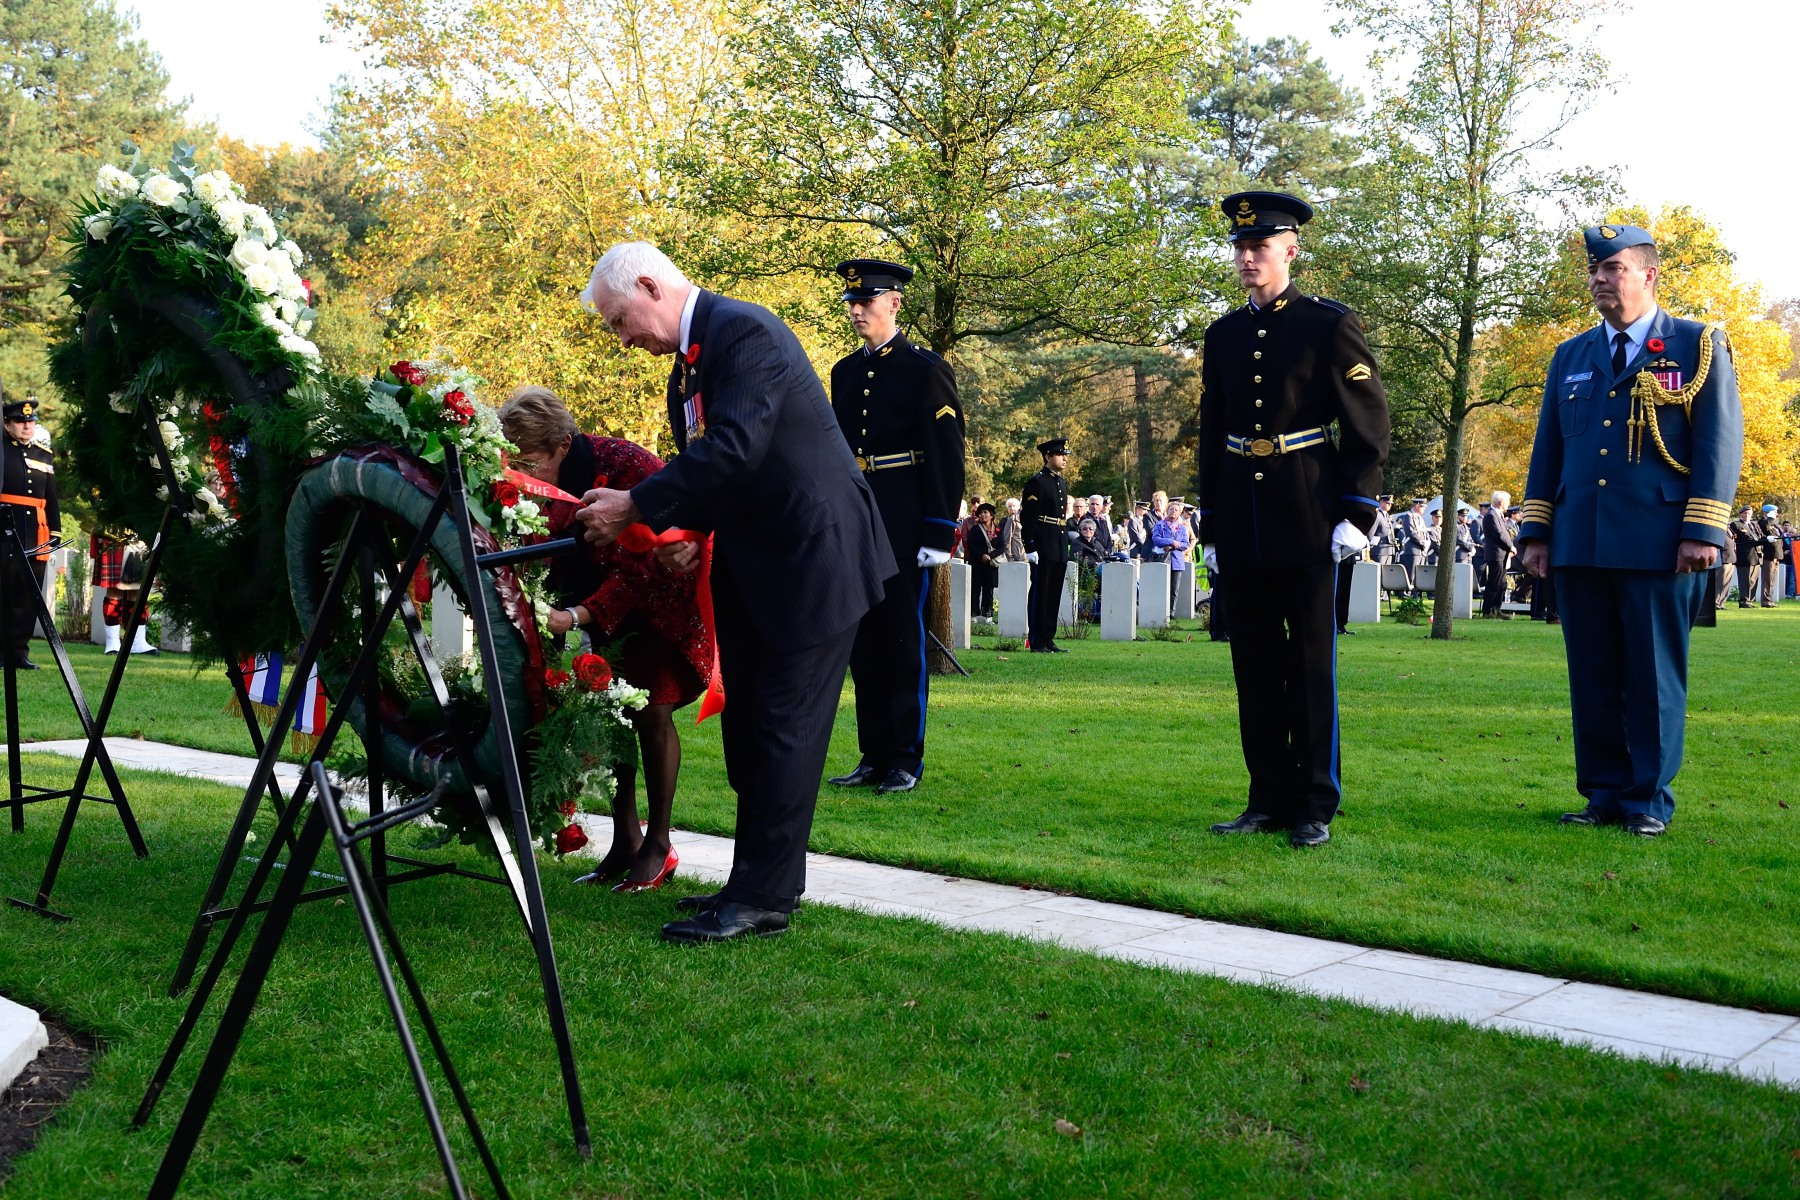 The Governor General also laid a wreath on behalf of the people of Canada on this occasion.